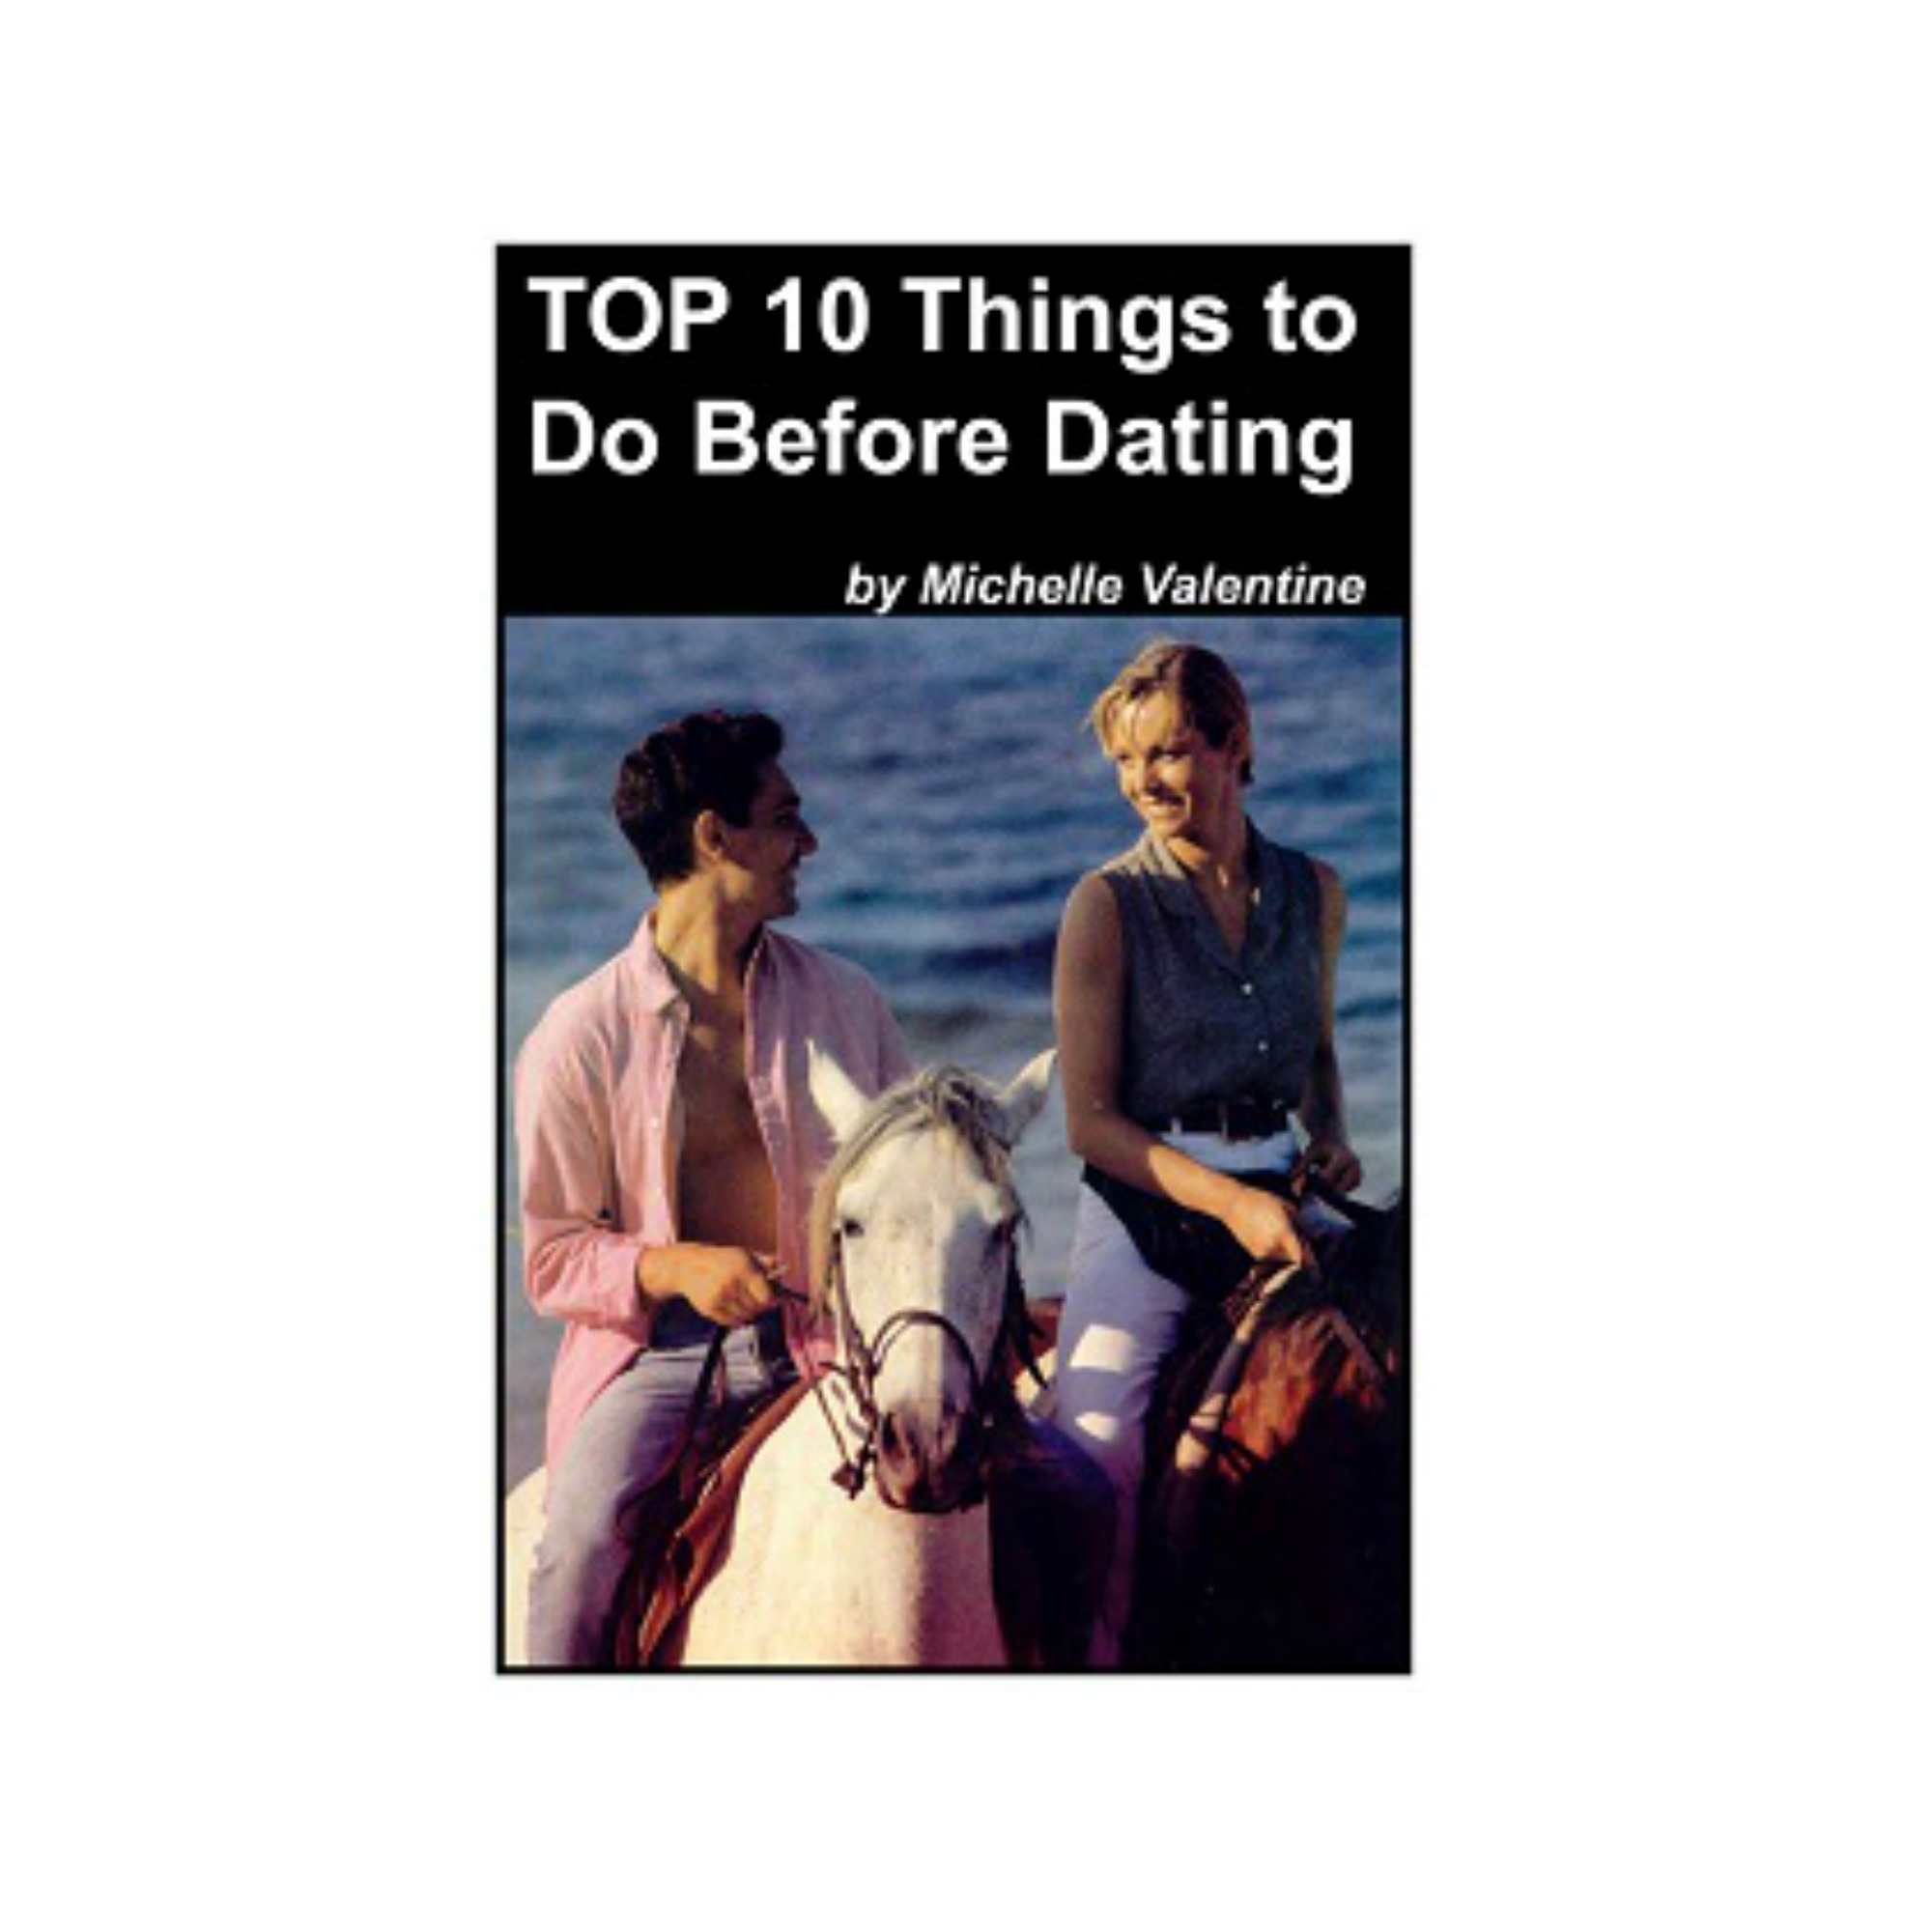 TOP 10 THINGS BEFORE DATING